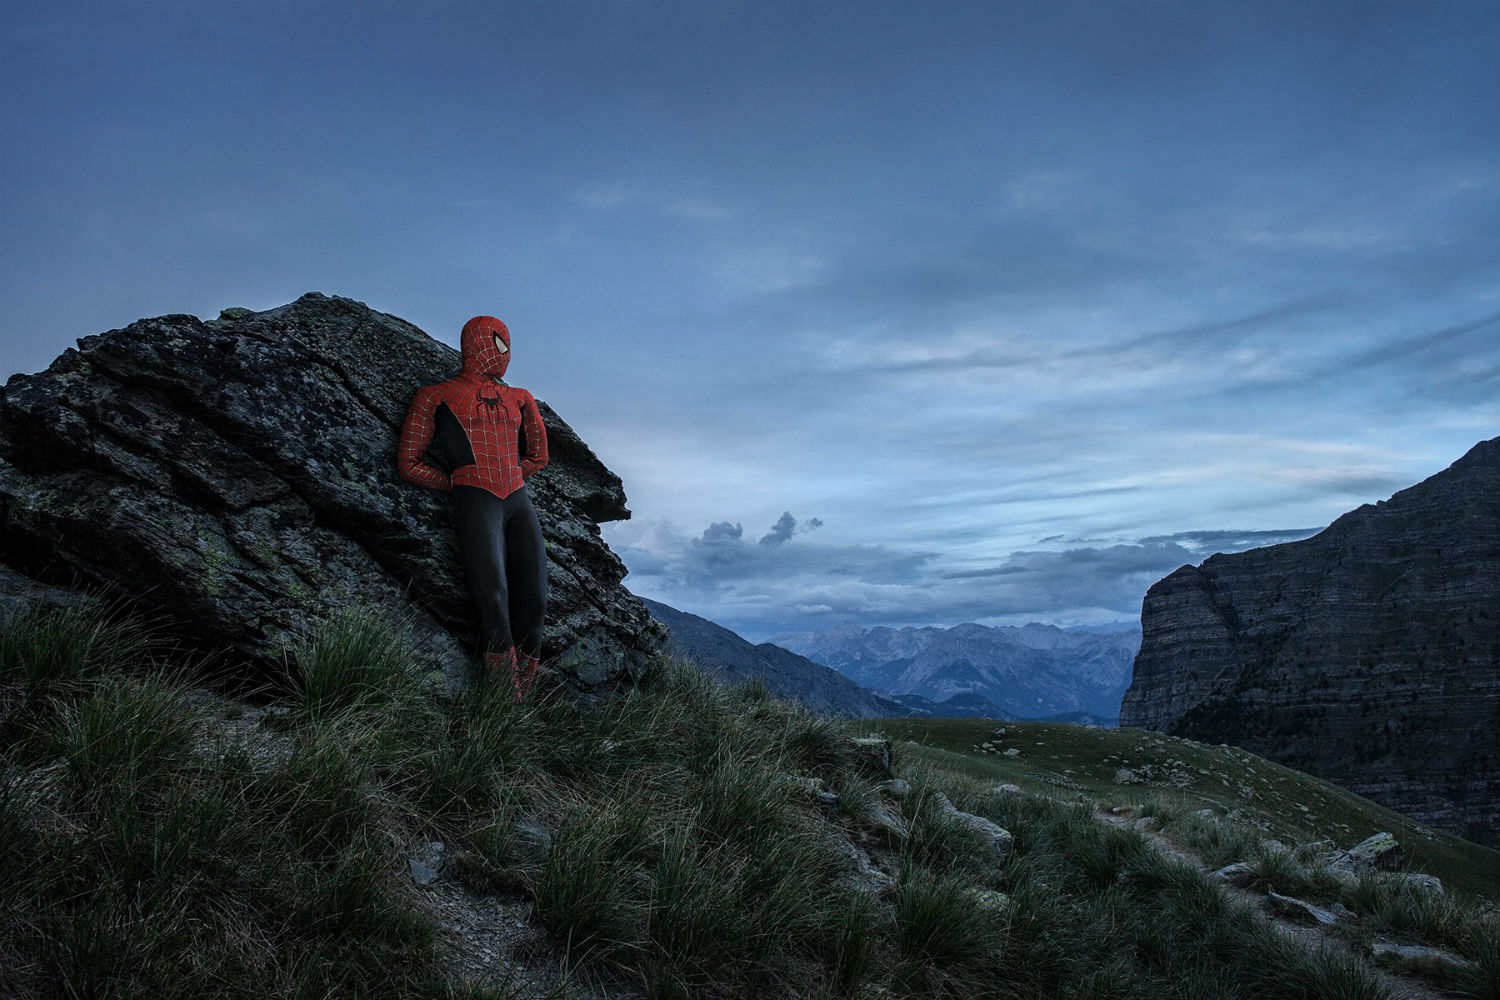 benoit lapray superheroes photography nature solitude spiderman